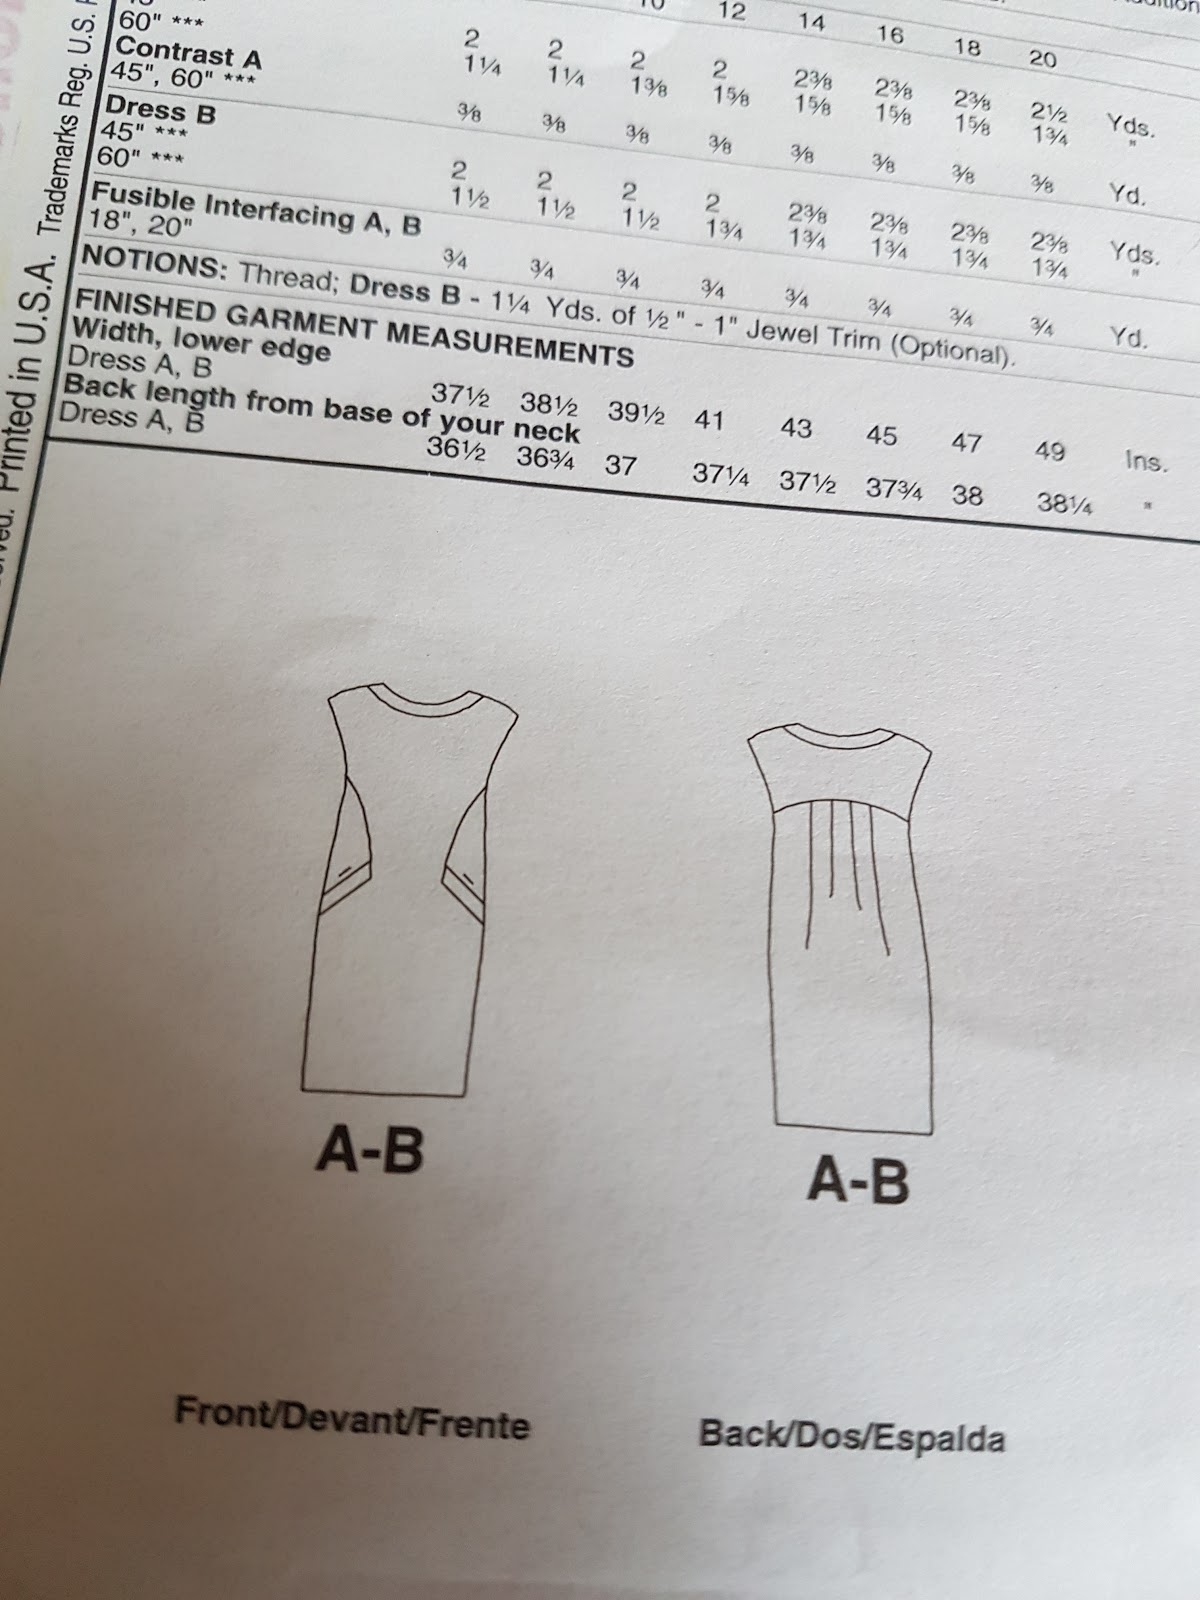 c28a2be55786 It is a pull-over dress with side panels and pockets and some back pleats.  It is possible to make the pocket bands and neck in contrasting material or  put ...